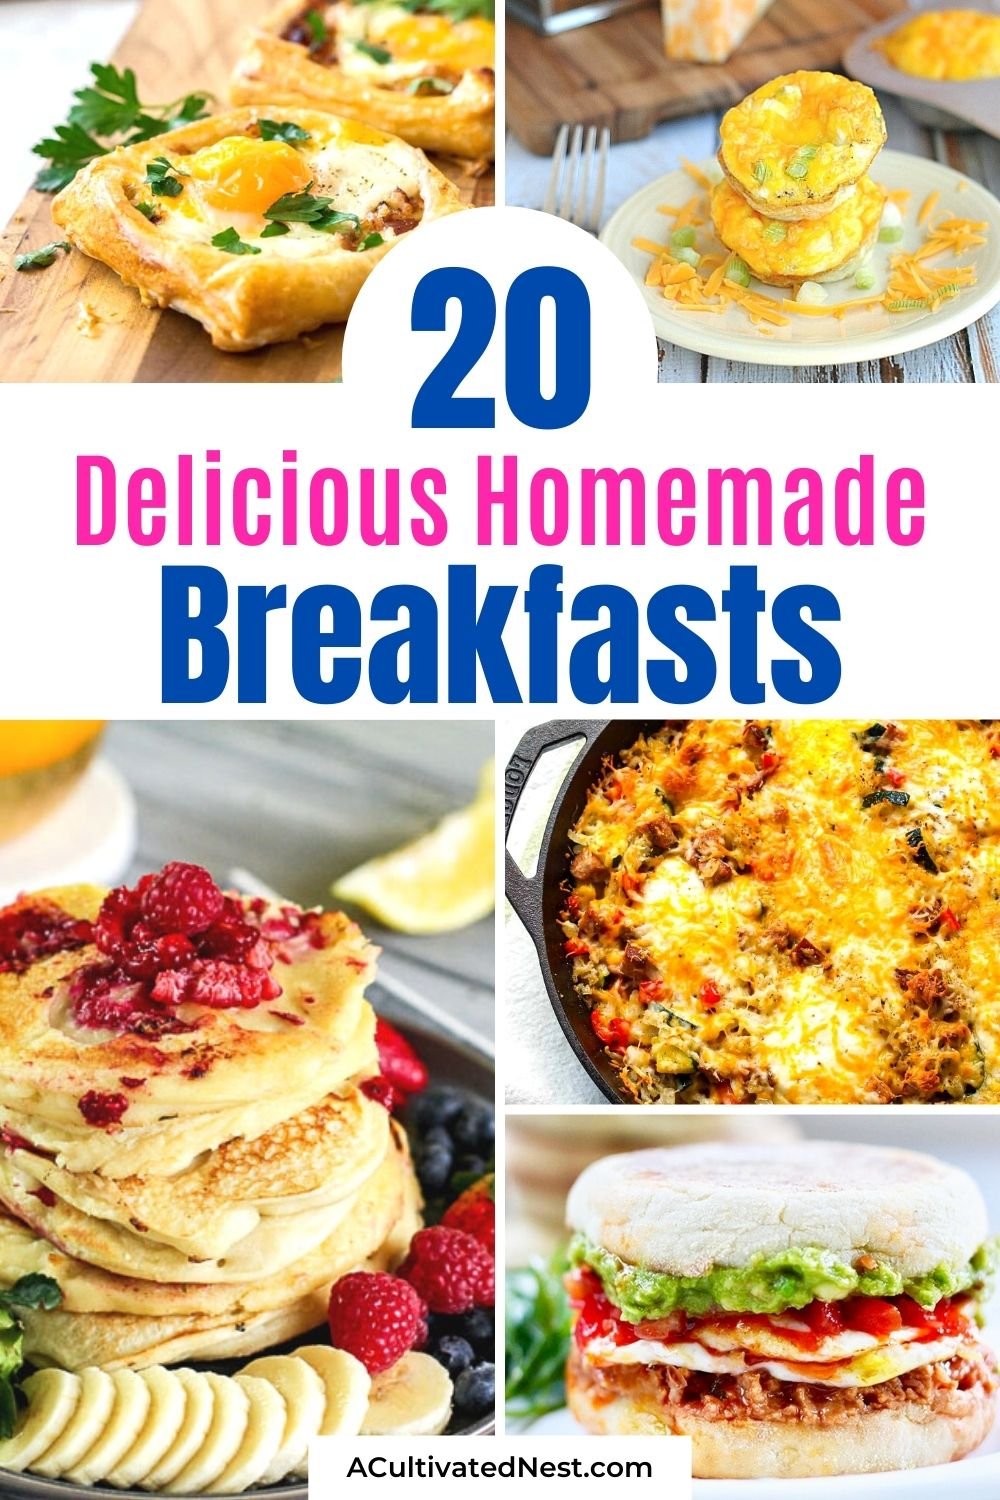 20 Comforting Homemade Breakfast Recipes- For a delicious start to the day, make these comforting homemade breakfast recipes. These easy and hearty dishes are perfect for holidays, events, Sunday mornings, or just any random morning! | pancake recipes, waffle recipes, egg recipes, #breakfast #brunch #recipes #breakfastIdeas #ACultivatedNest